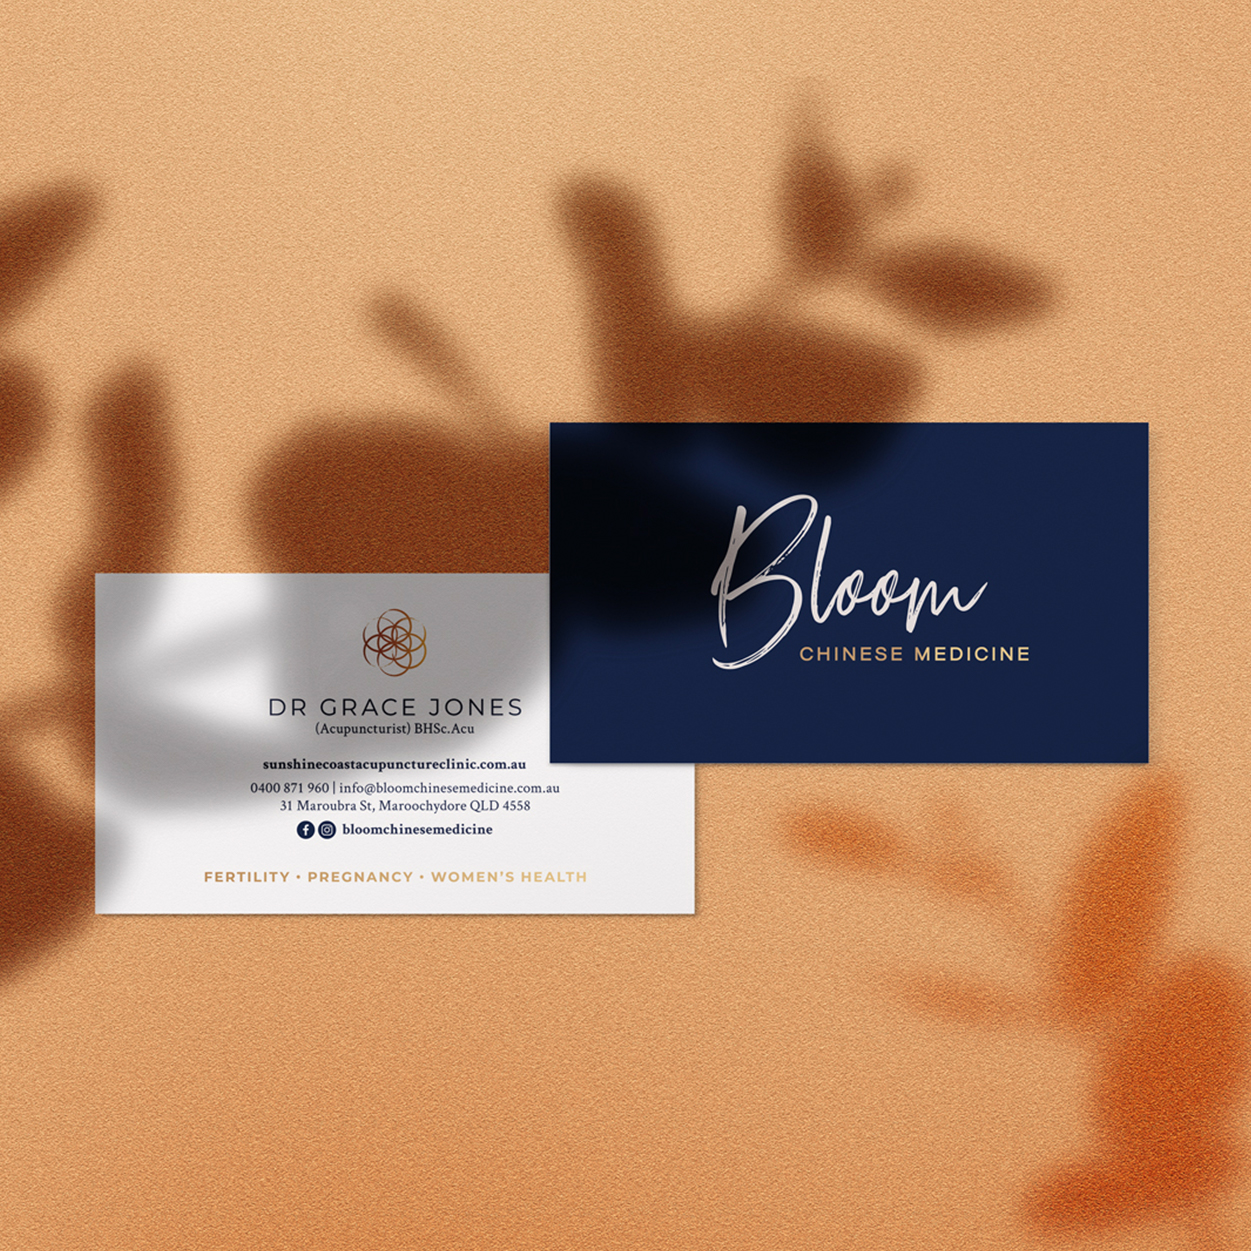 Bloom Chinese Medicine business cards.